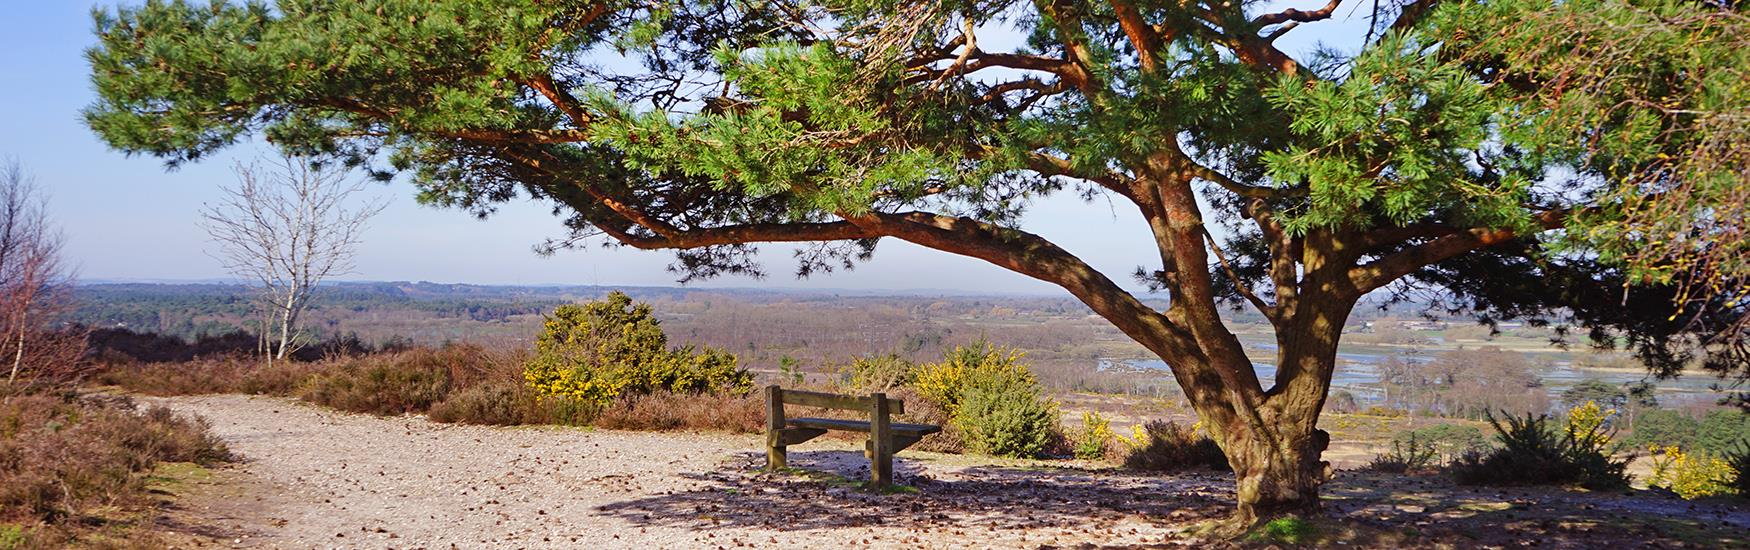 A lonely bench sits under a lush green tree with views of the Christchurch countryside